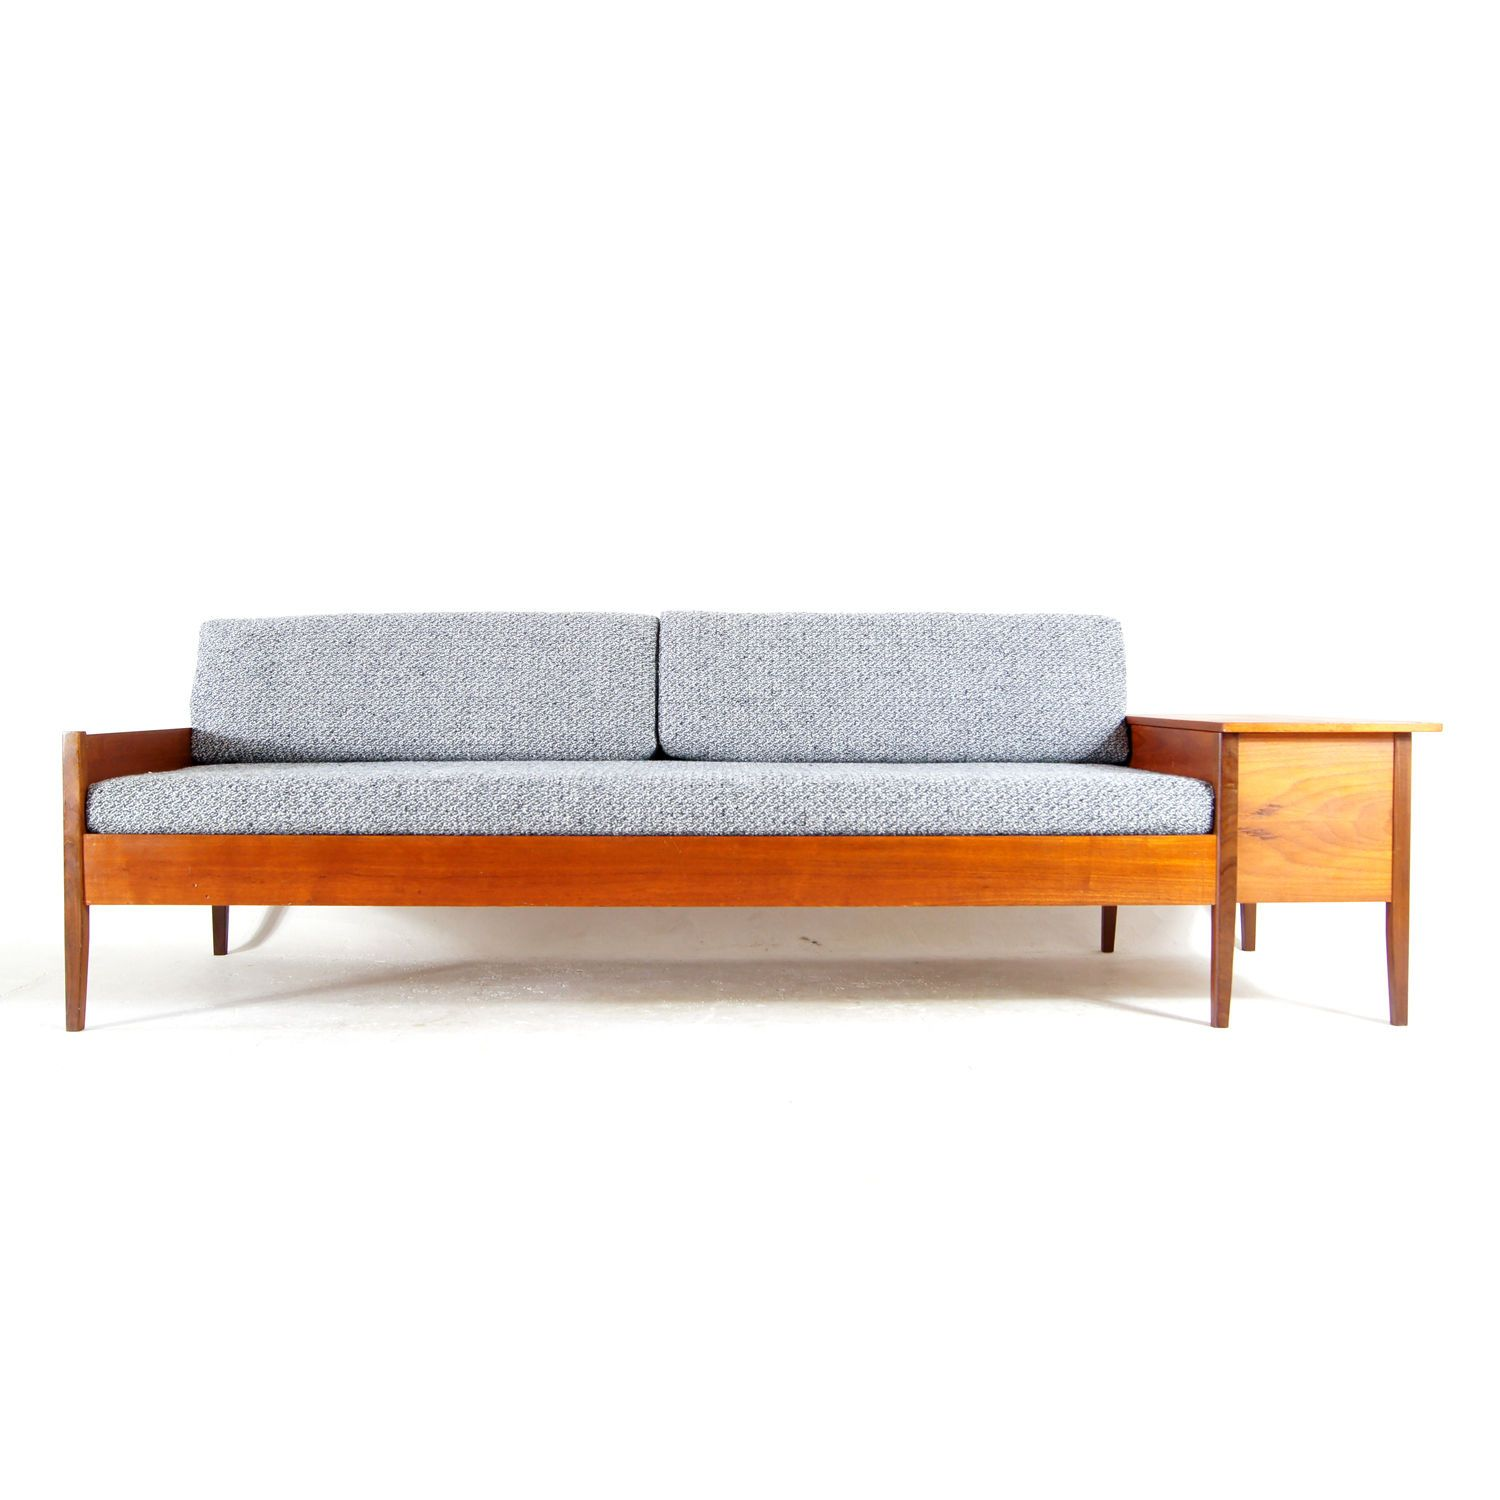 Retro Vintage Danish Modern Teak Daybed Bench Sofa Day Bed Chaise